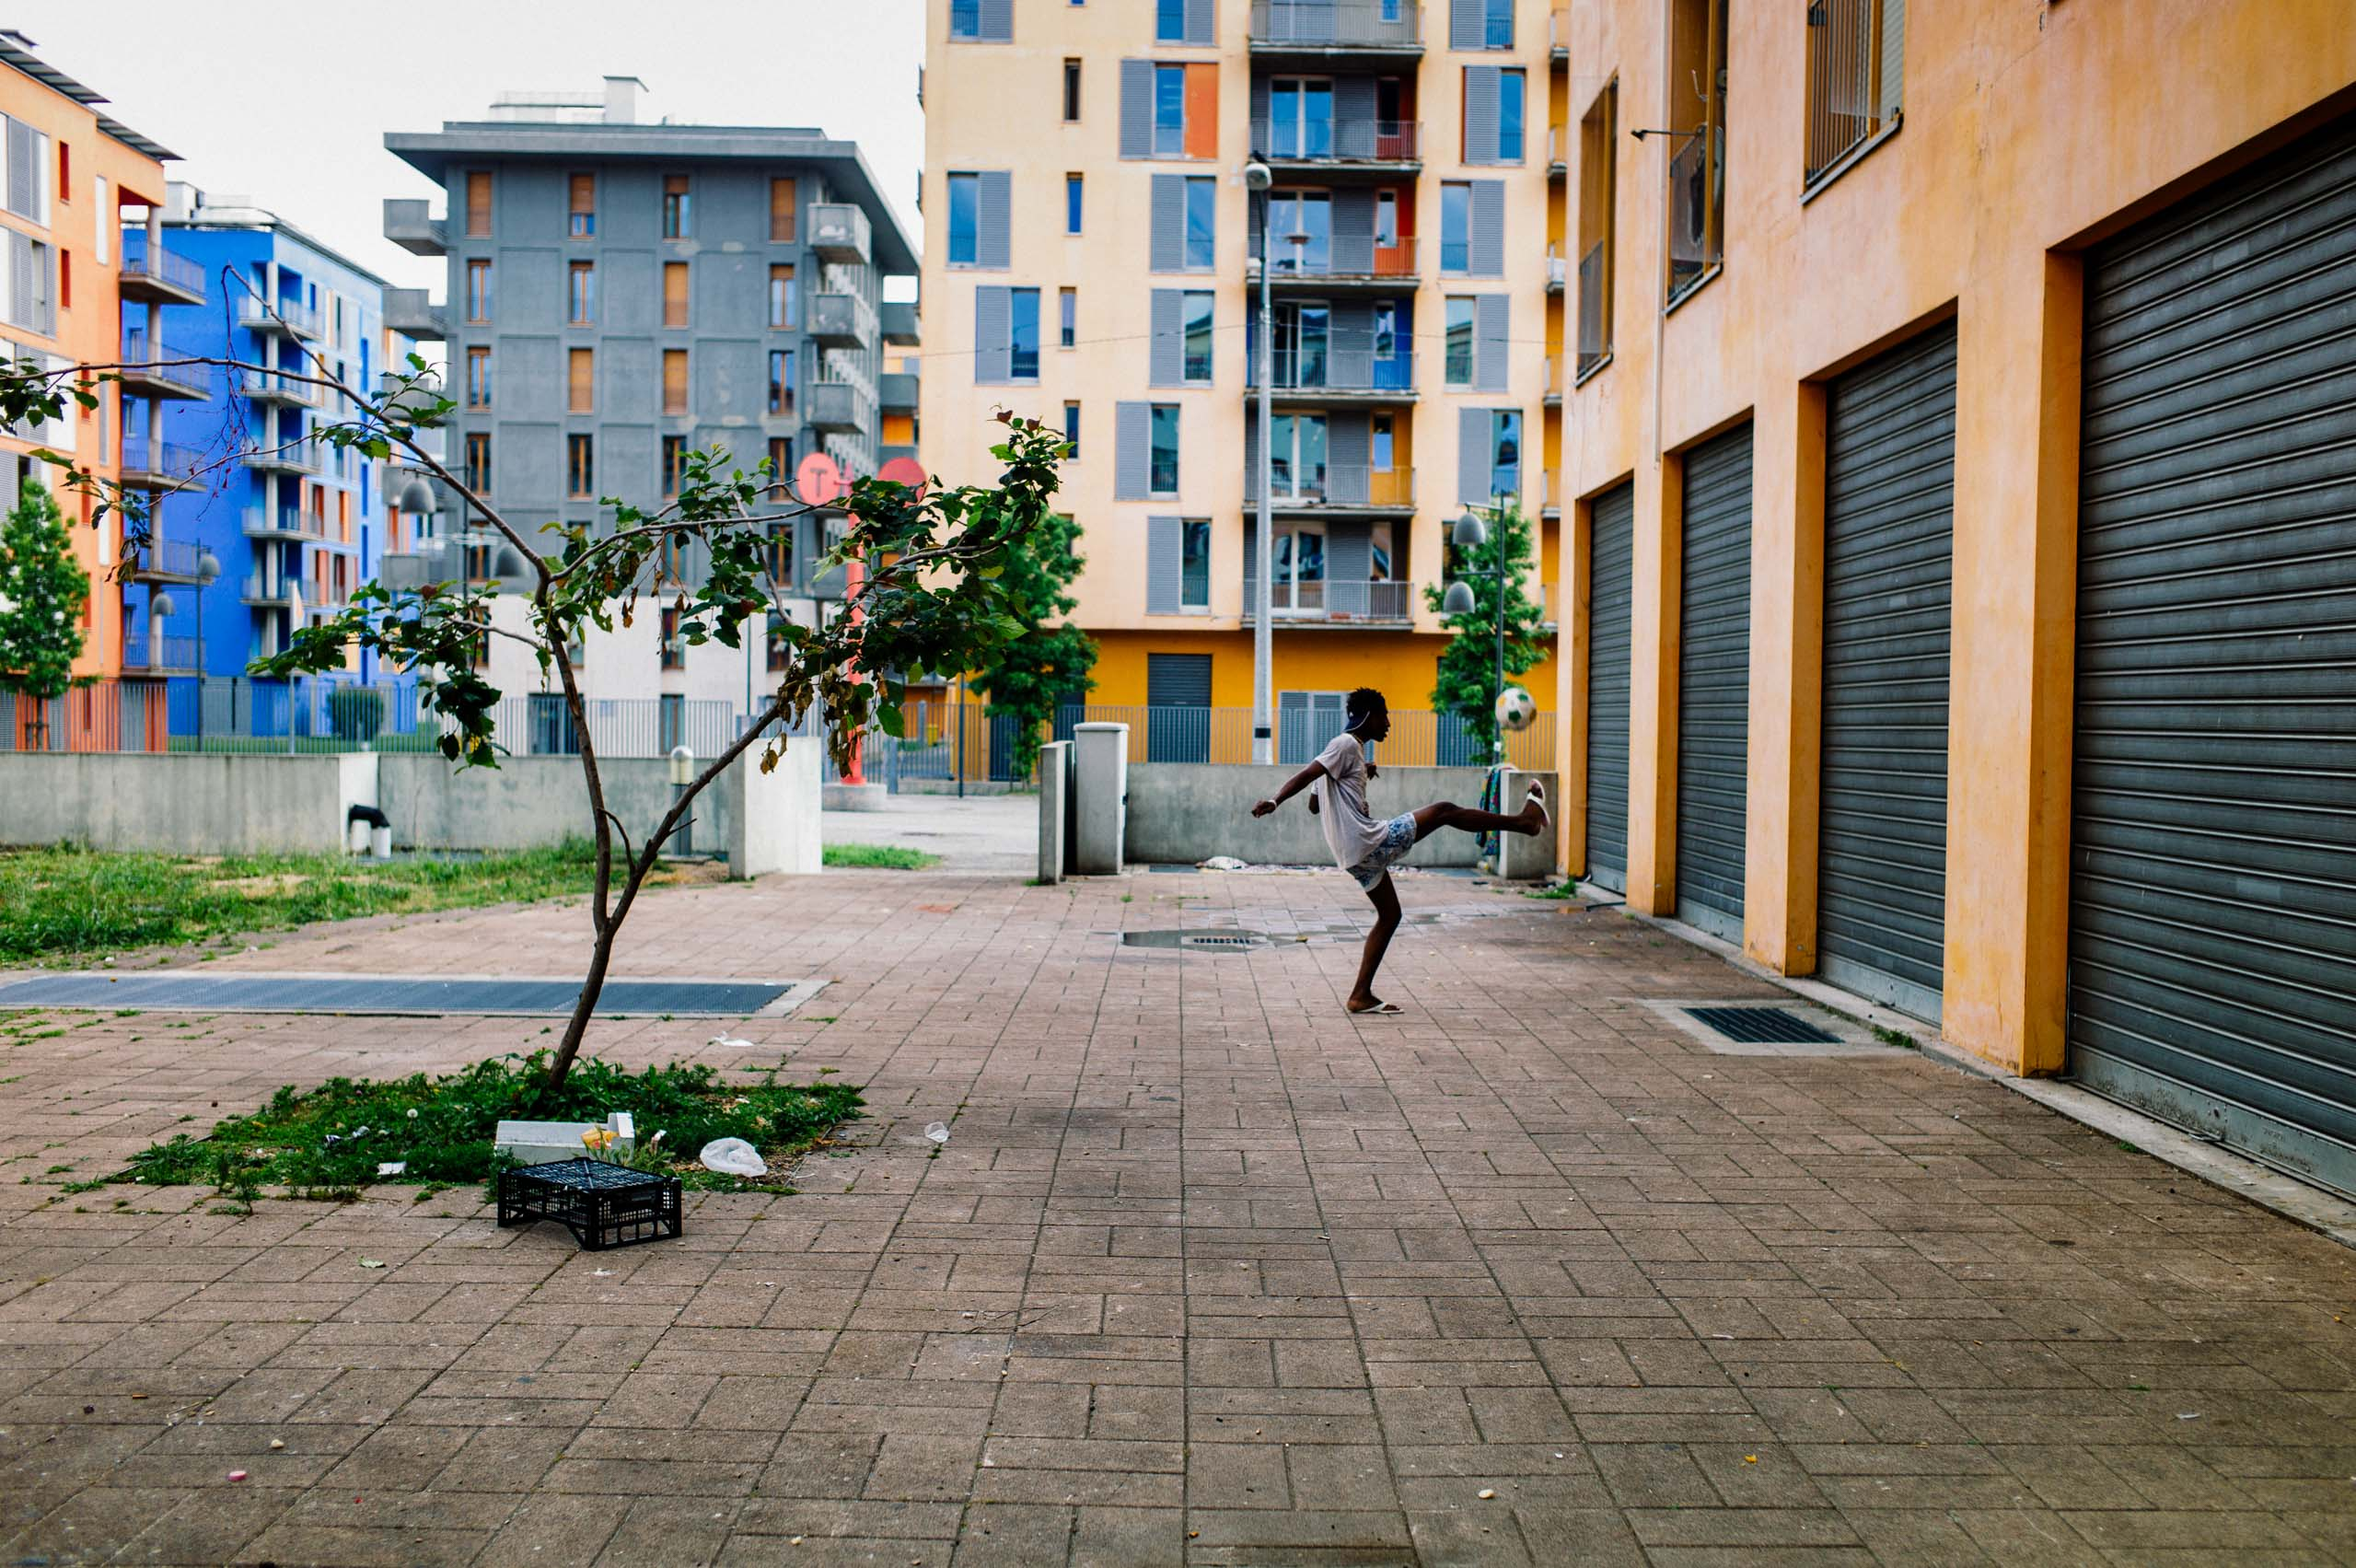 The Olympic Village in Turin, host of the 2006 Winter Olympics, photographed in June 2016. After sitting empty for years, the buildings became a home for squatters and later for more than 1,000 migrants and refugees, many from Africa.